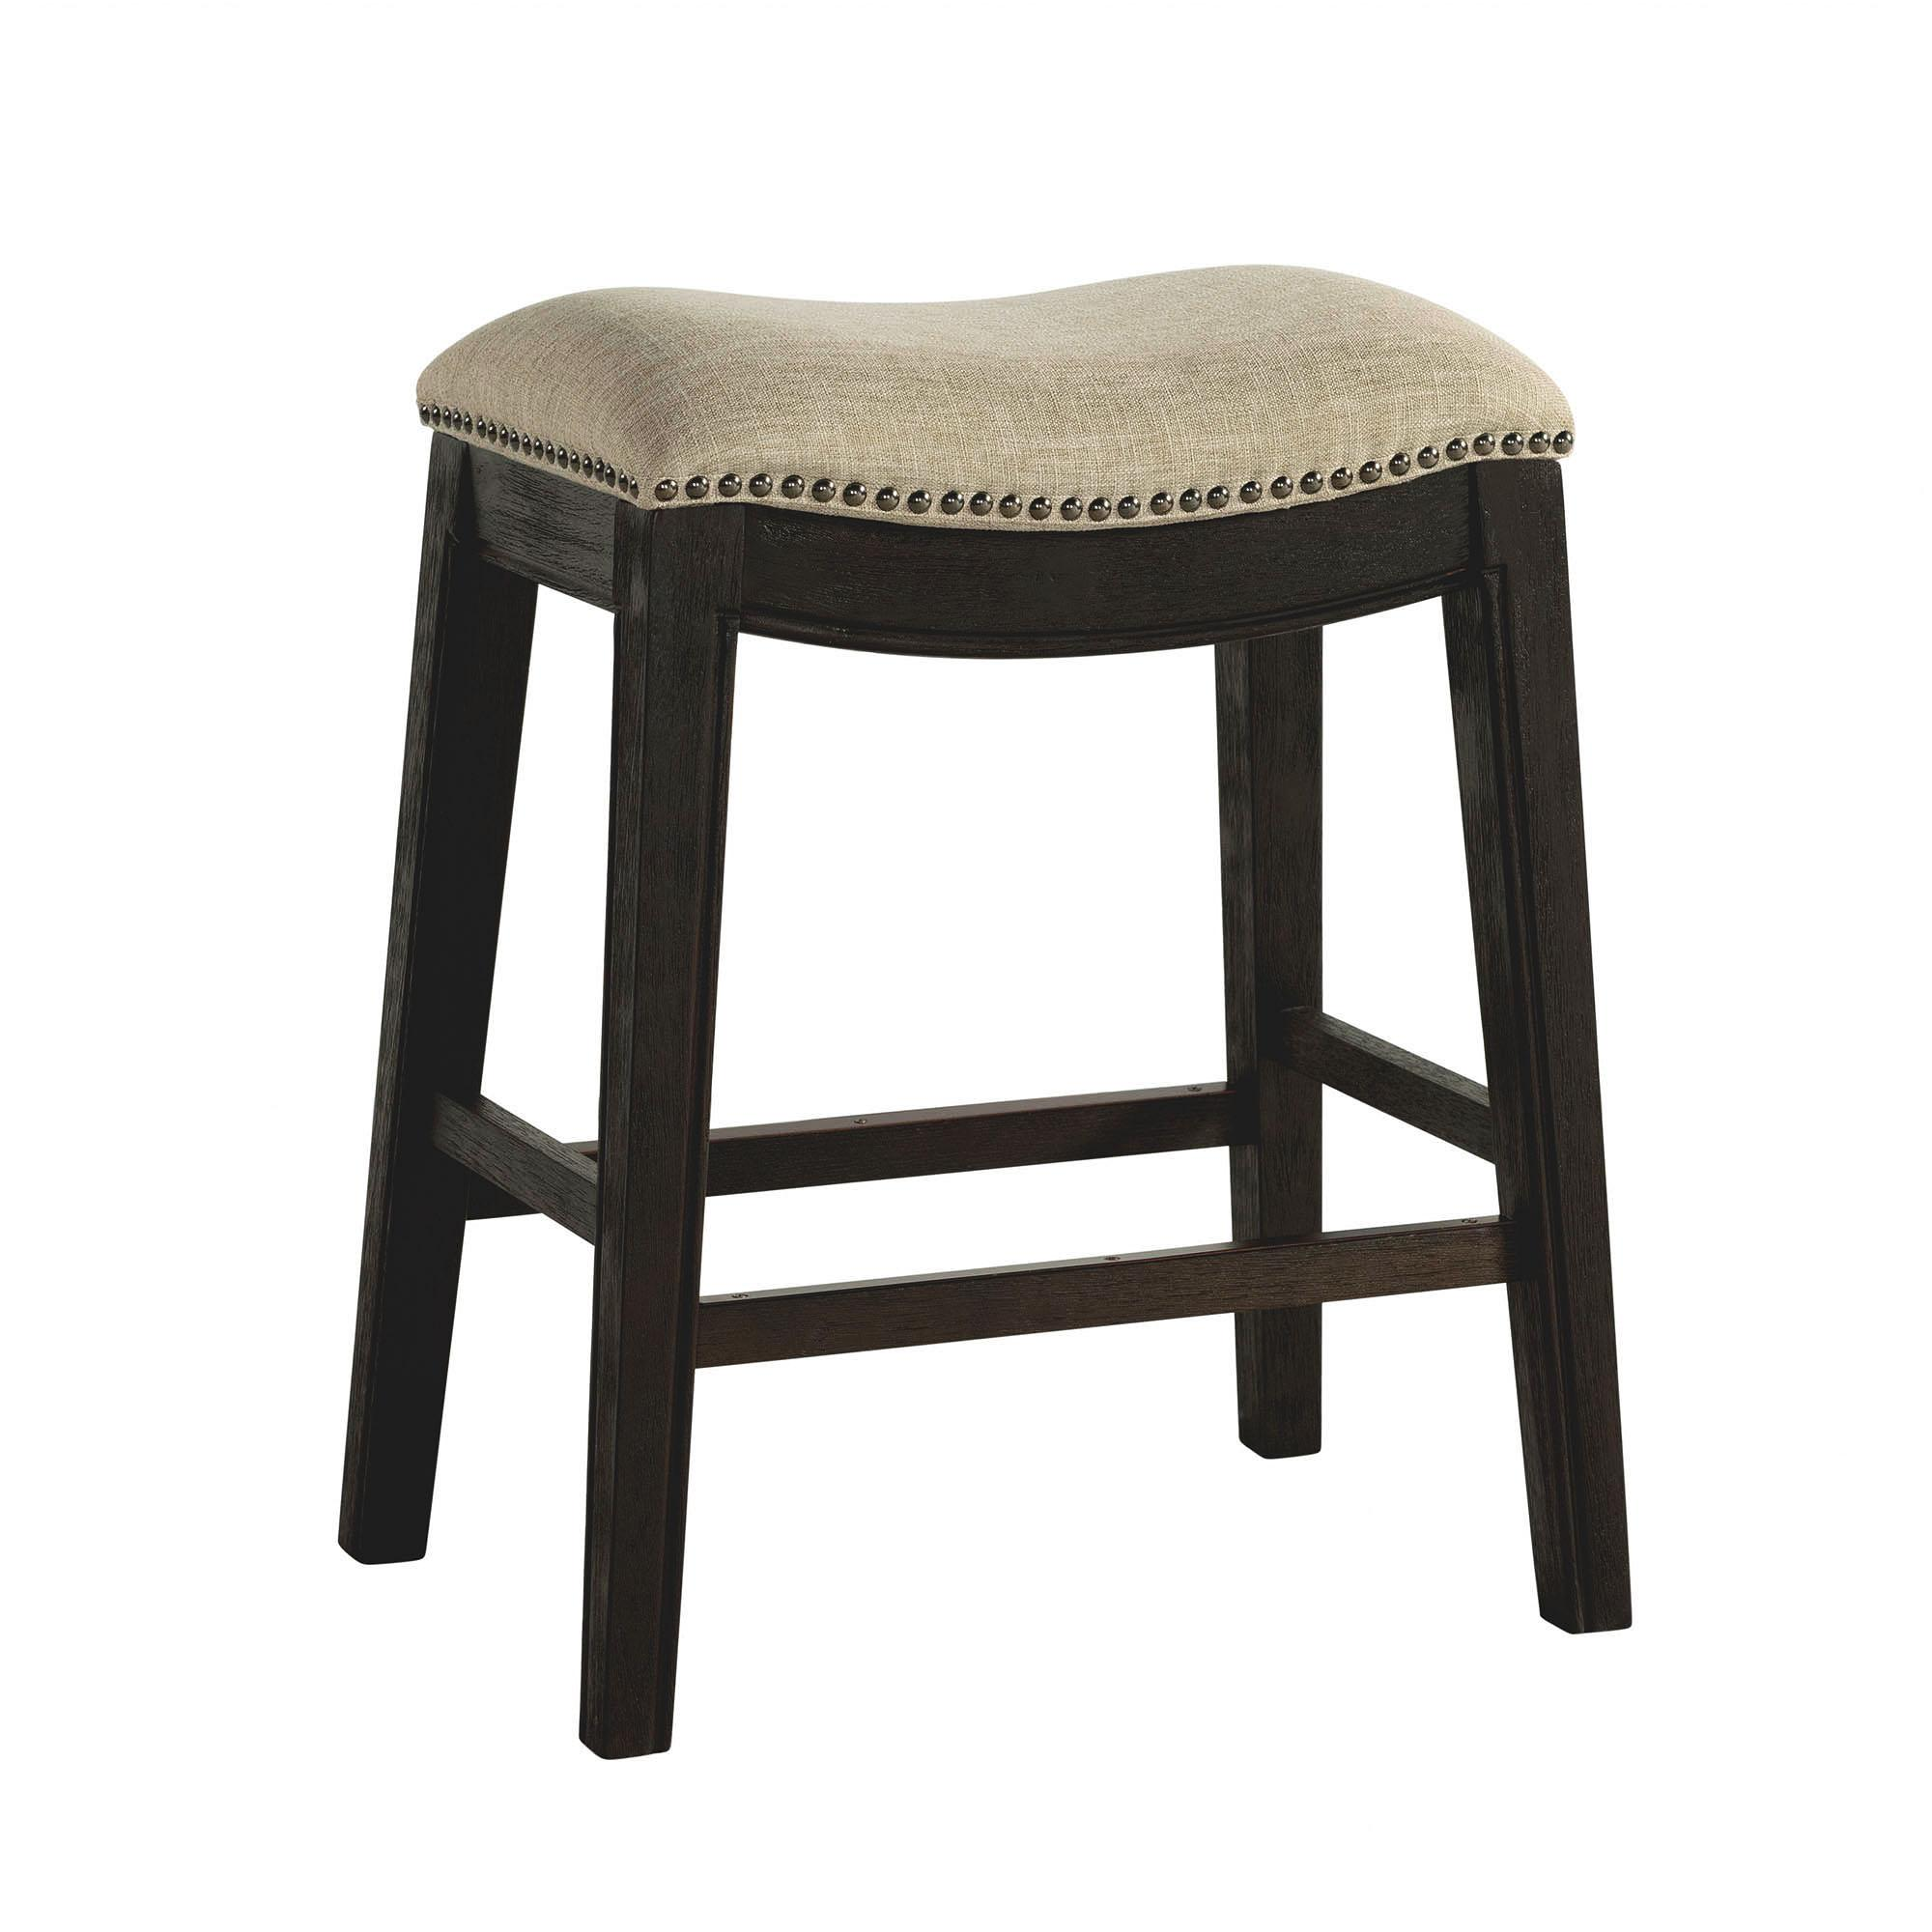 Tremendous Picket House Miles Espresso Taupe 24 Inch Counter Height Stool Beatyapartments Chair Design Images Beatyapartmentscom